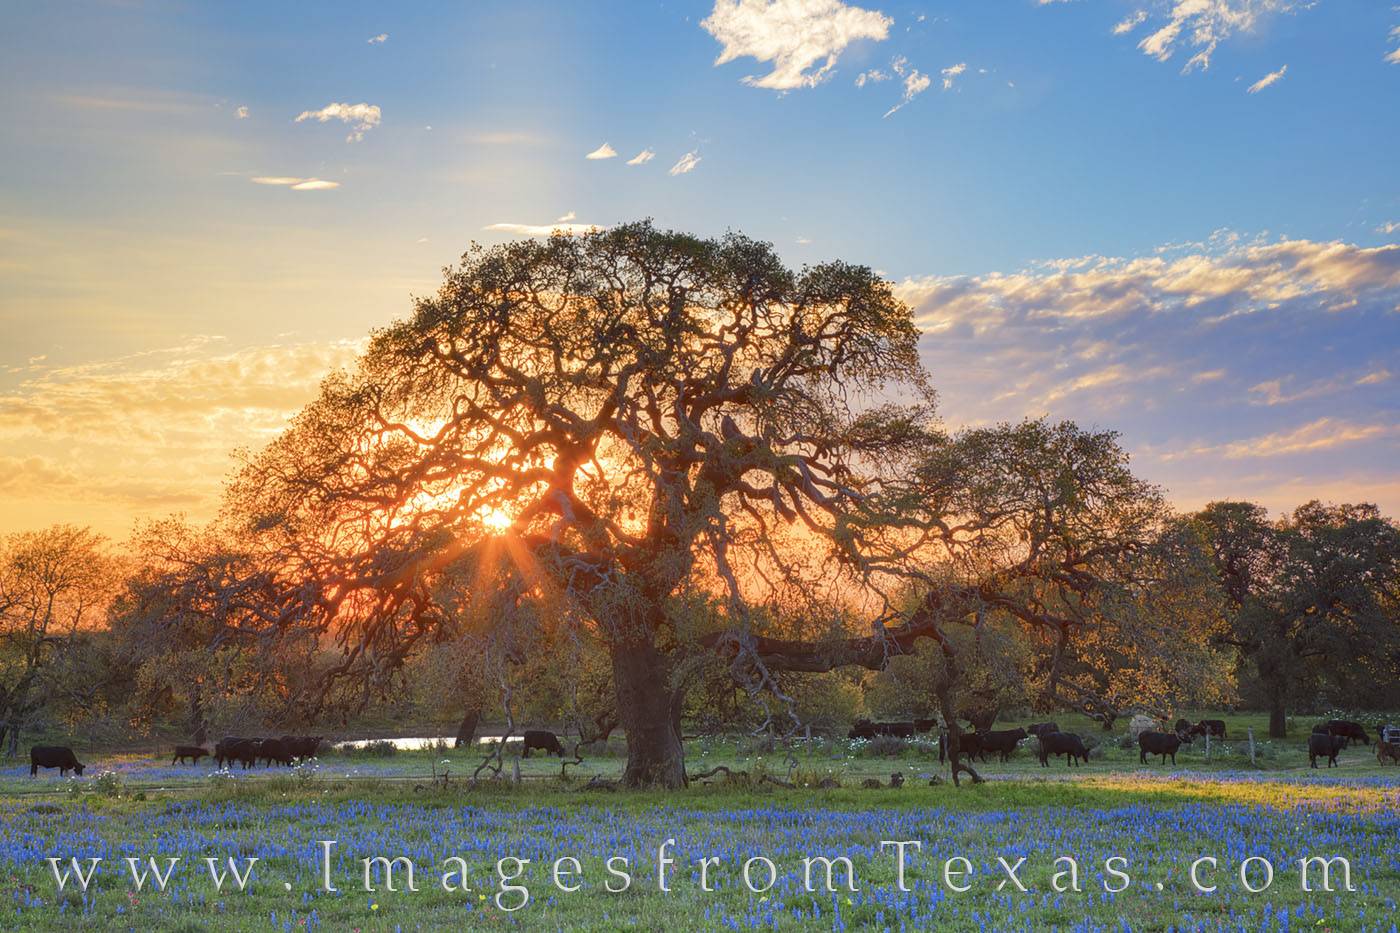 bluebonnets, oak tree, cattle, cows, sunset, south texas, poteet, evening, march, spring, wildflowers, photo